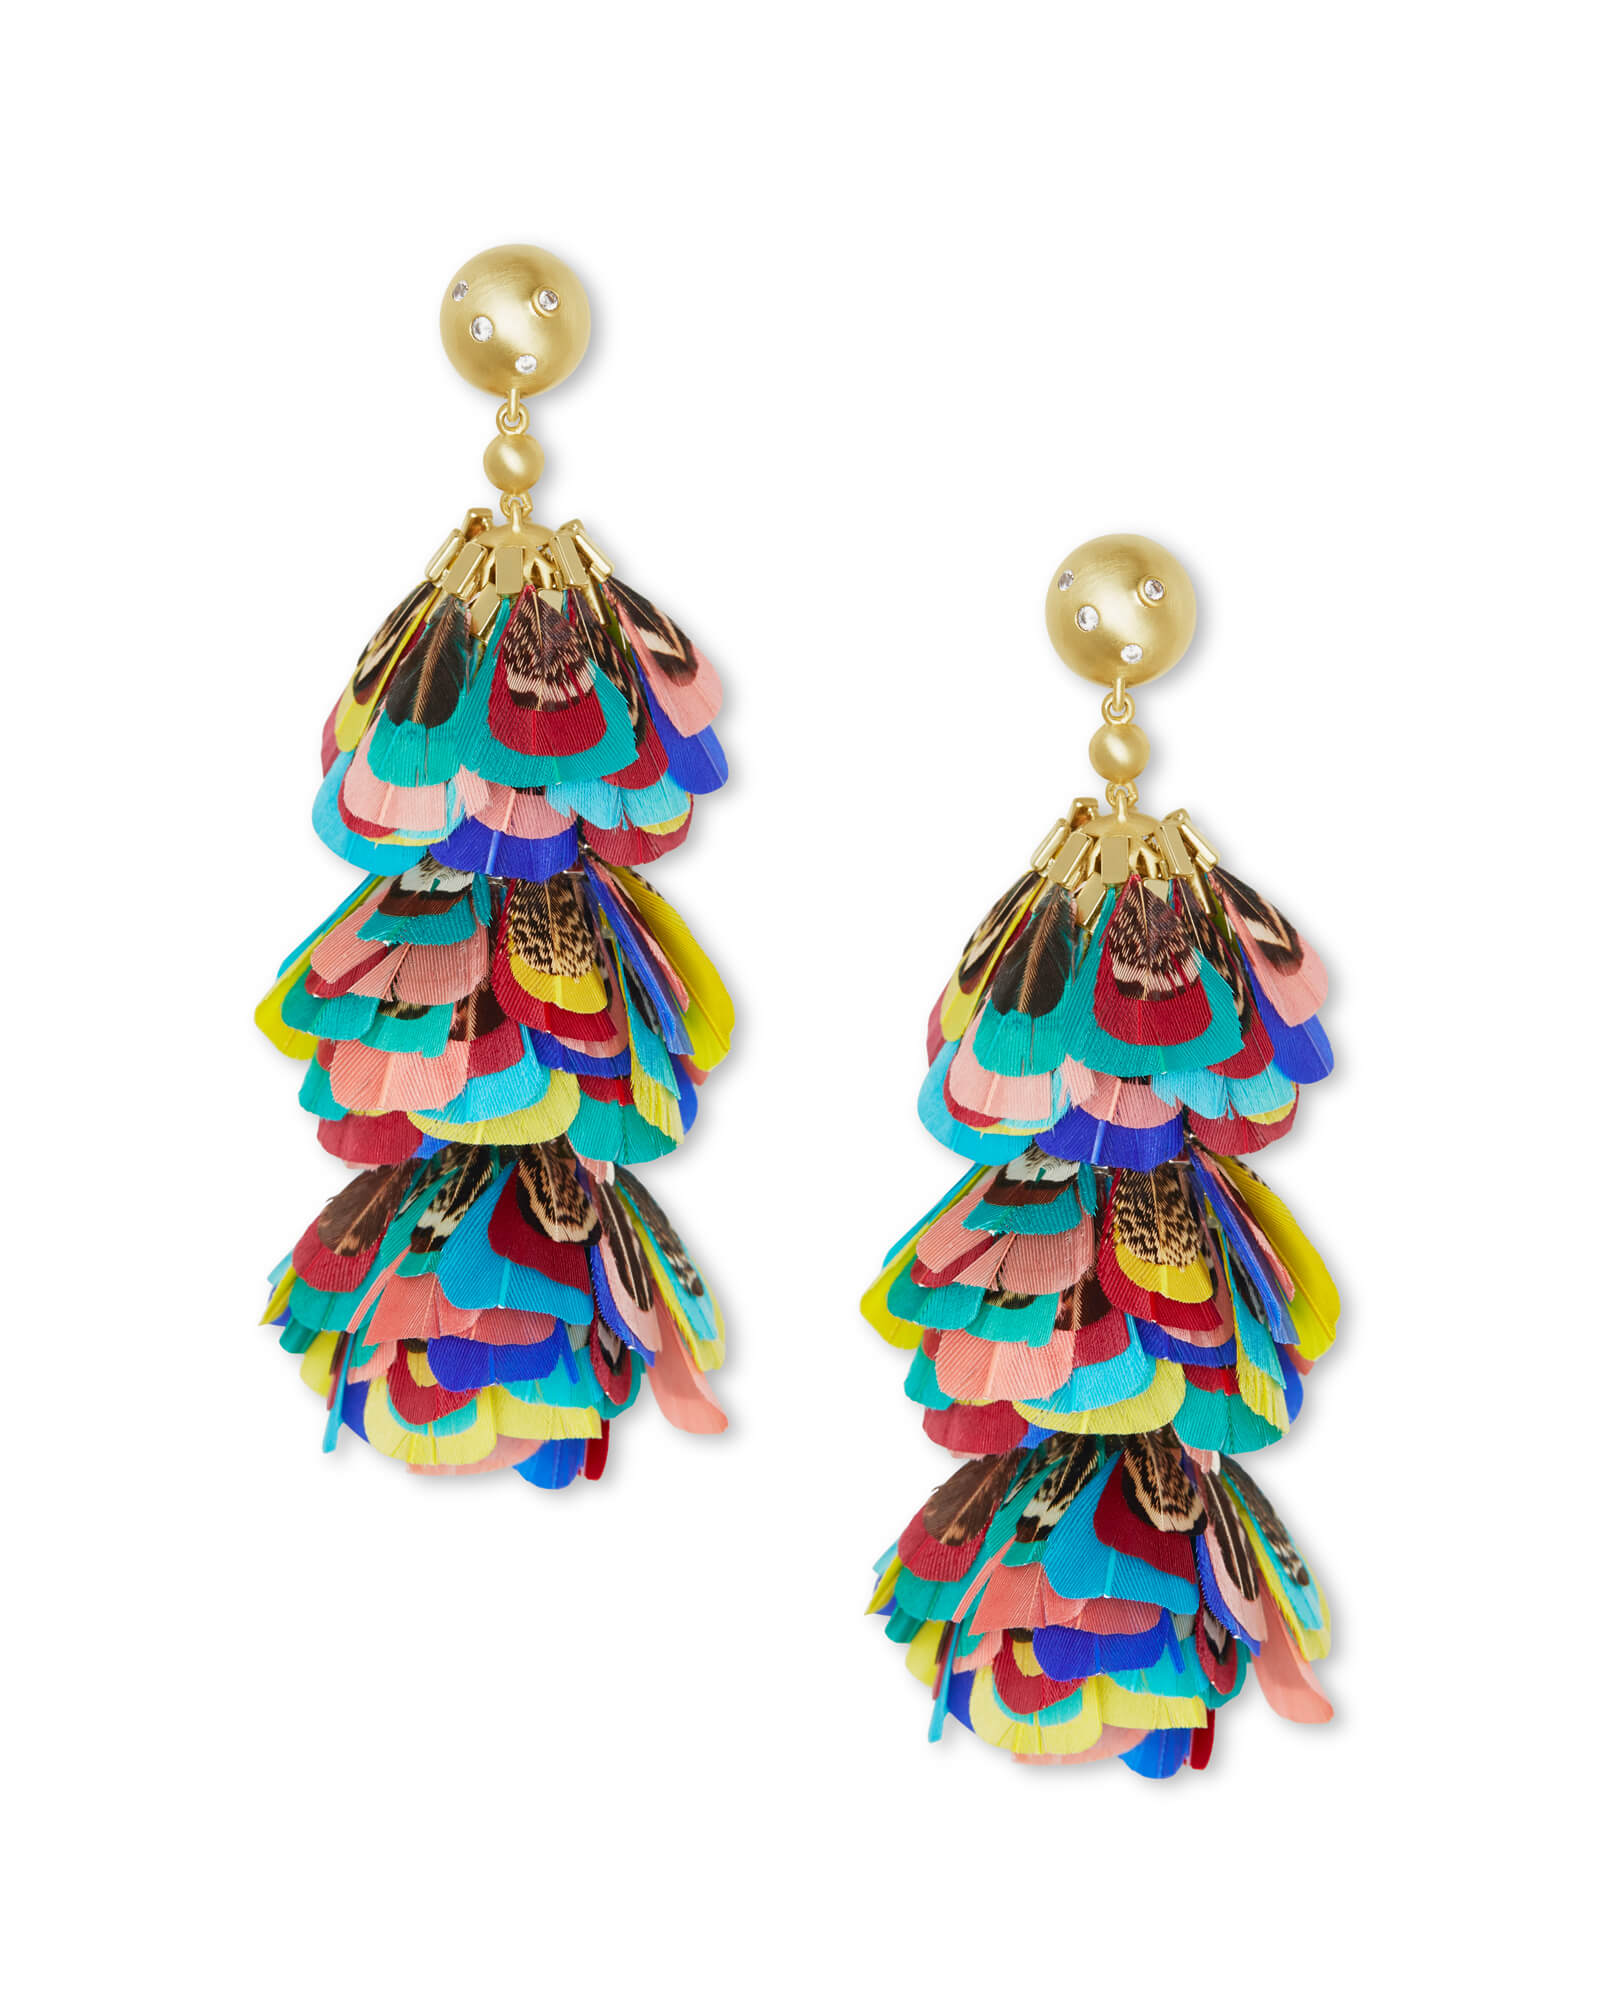 Lenni Gold Statement Earrings in Multi Color Feathers